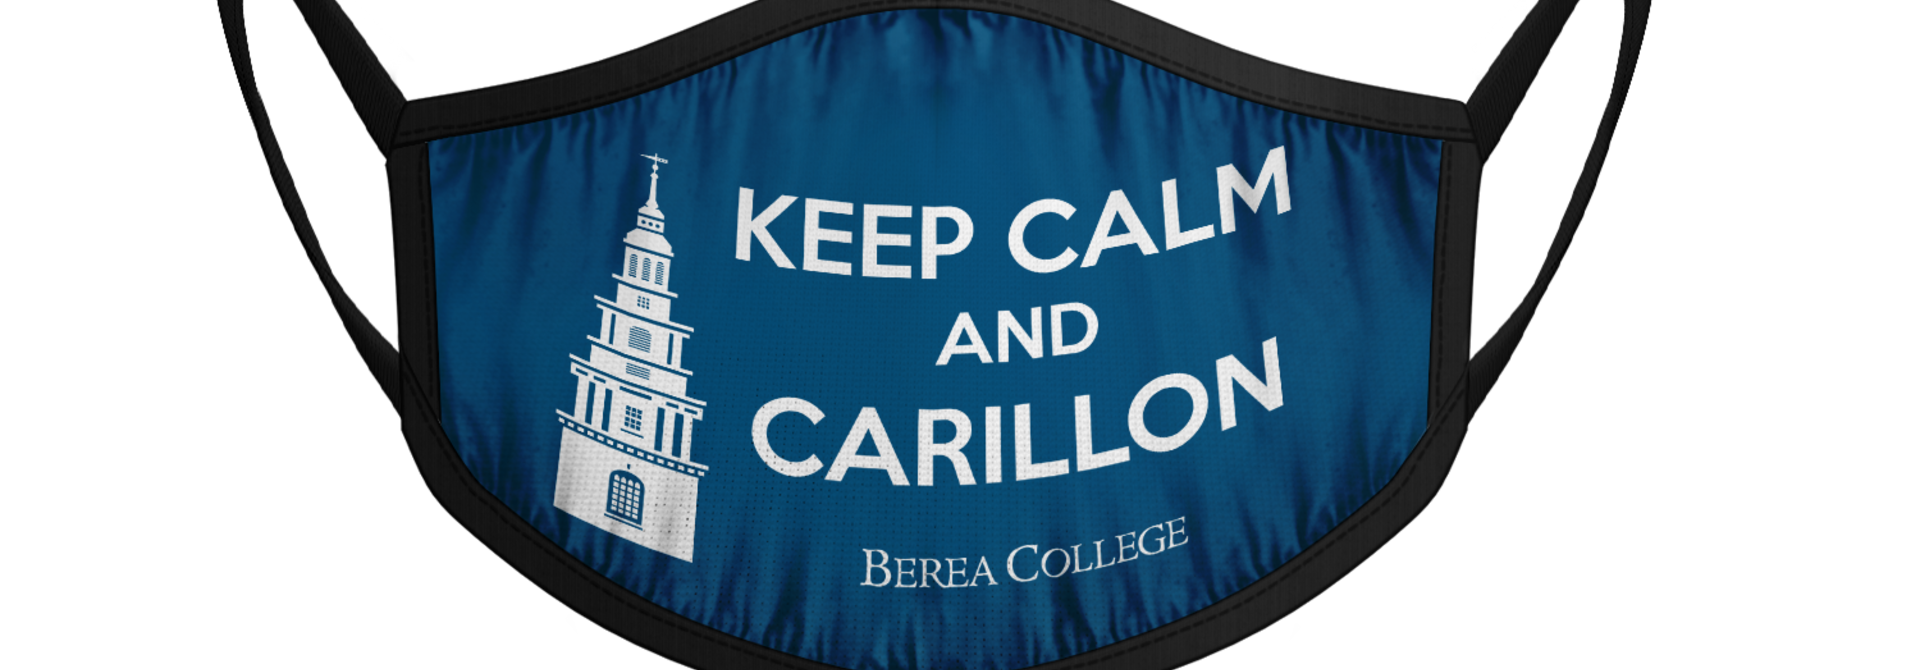 Keep Calm and Carillon Face Mask